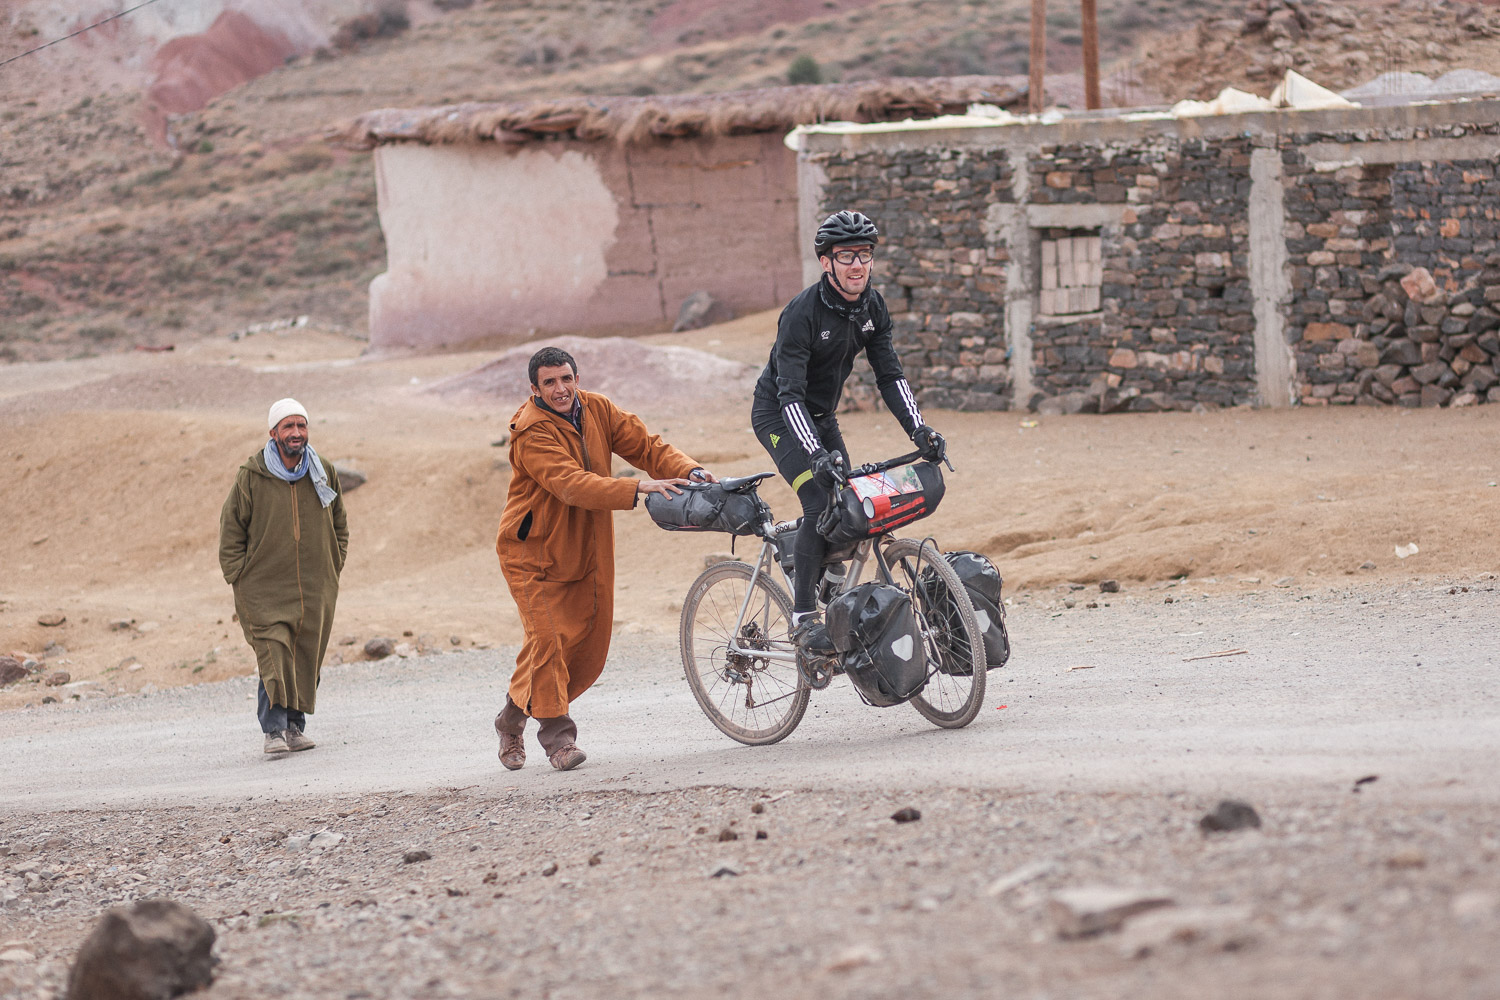 8bar bikes adventures morocco gravel 20151214 0087 bearbeitet - 8bar Adventures - Morocco - High Atlas - Part 2/2